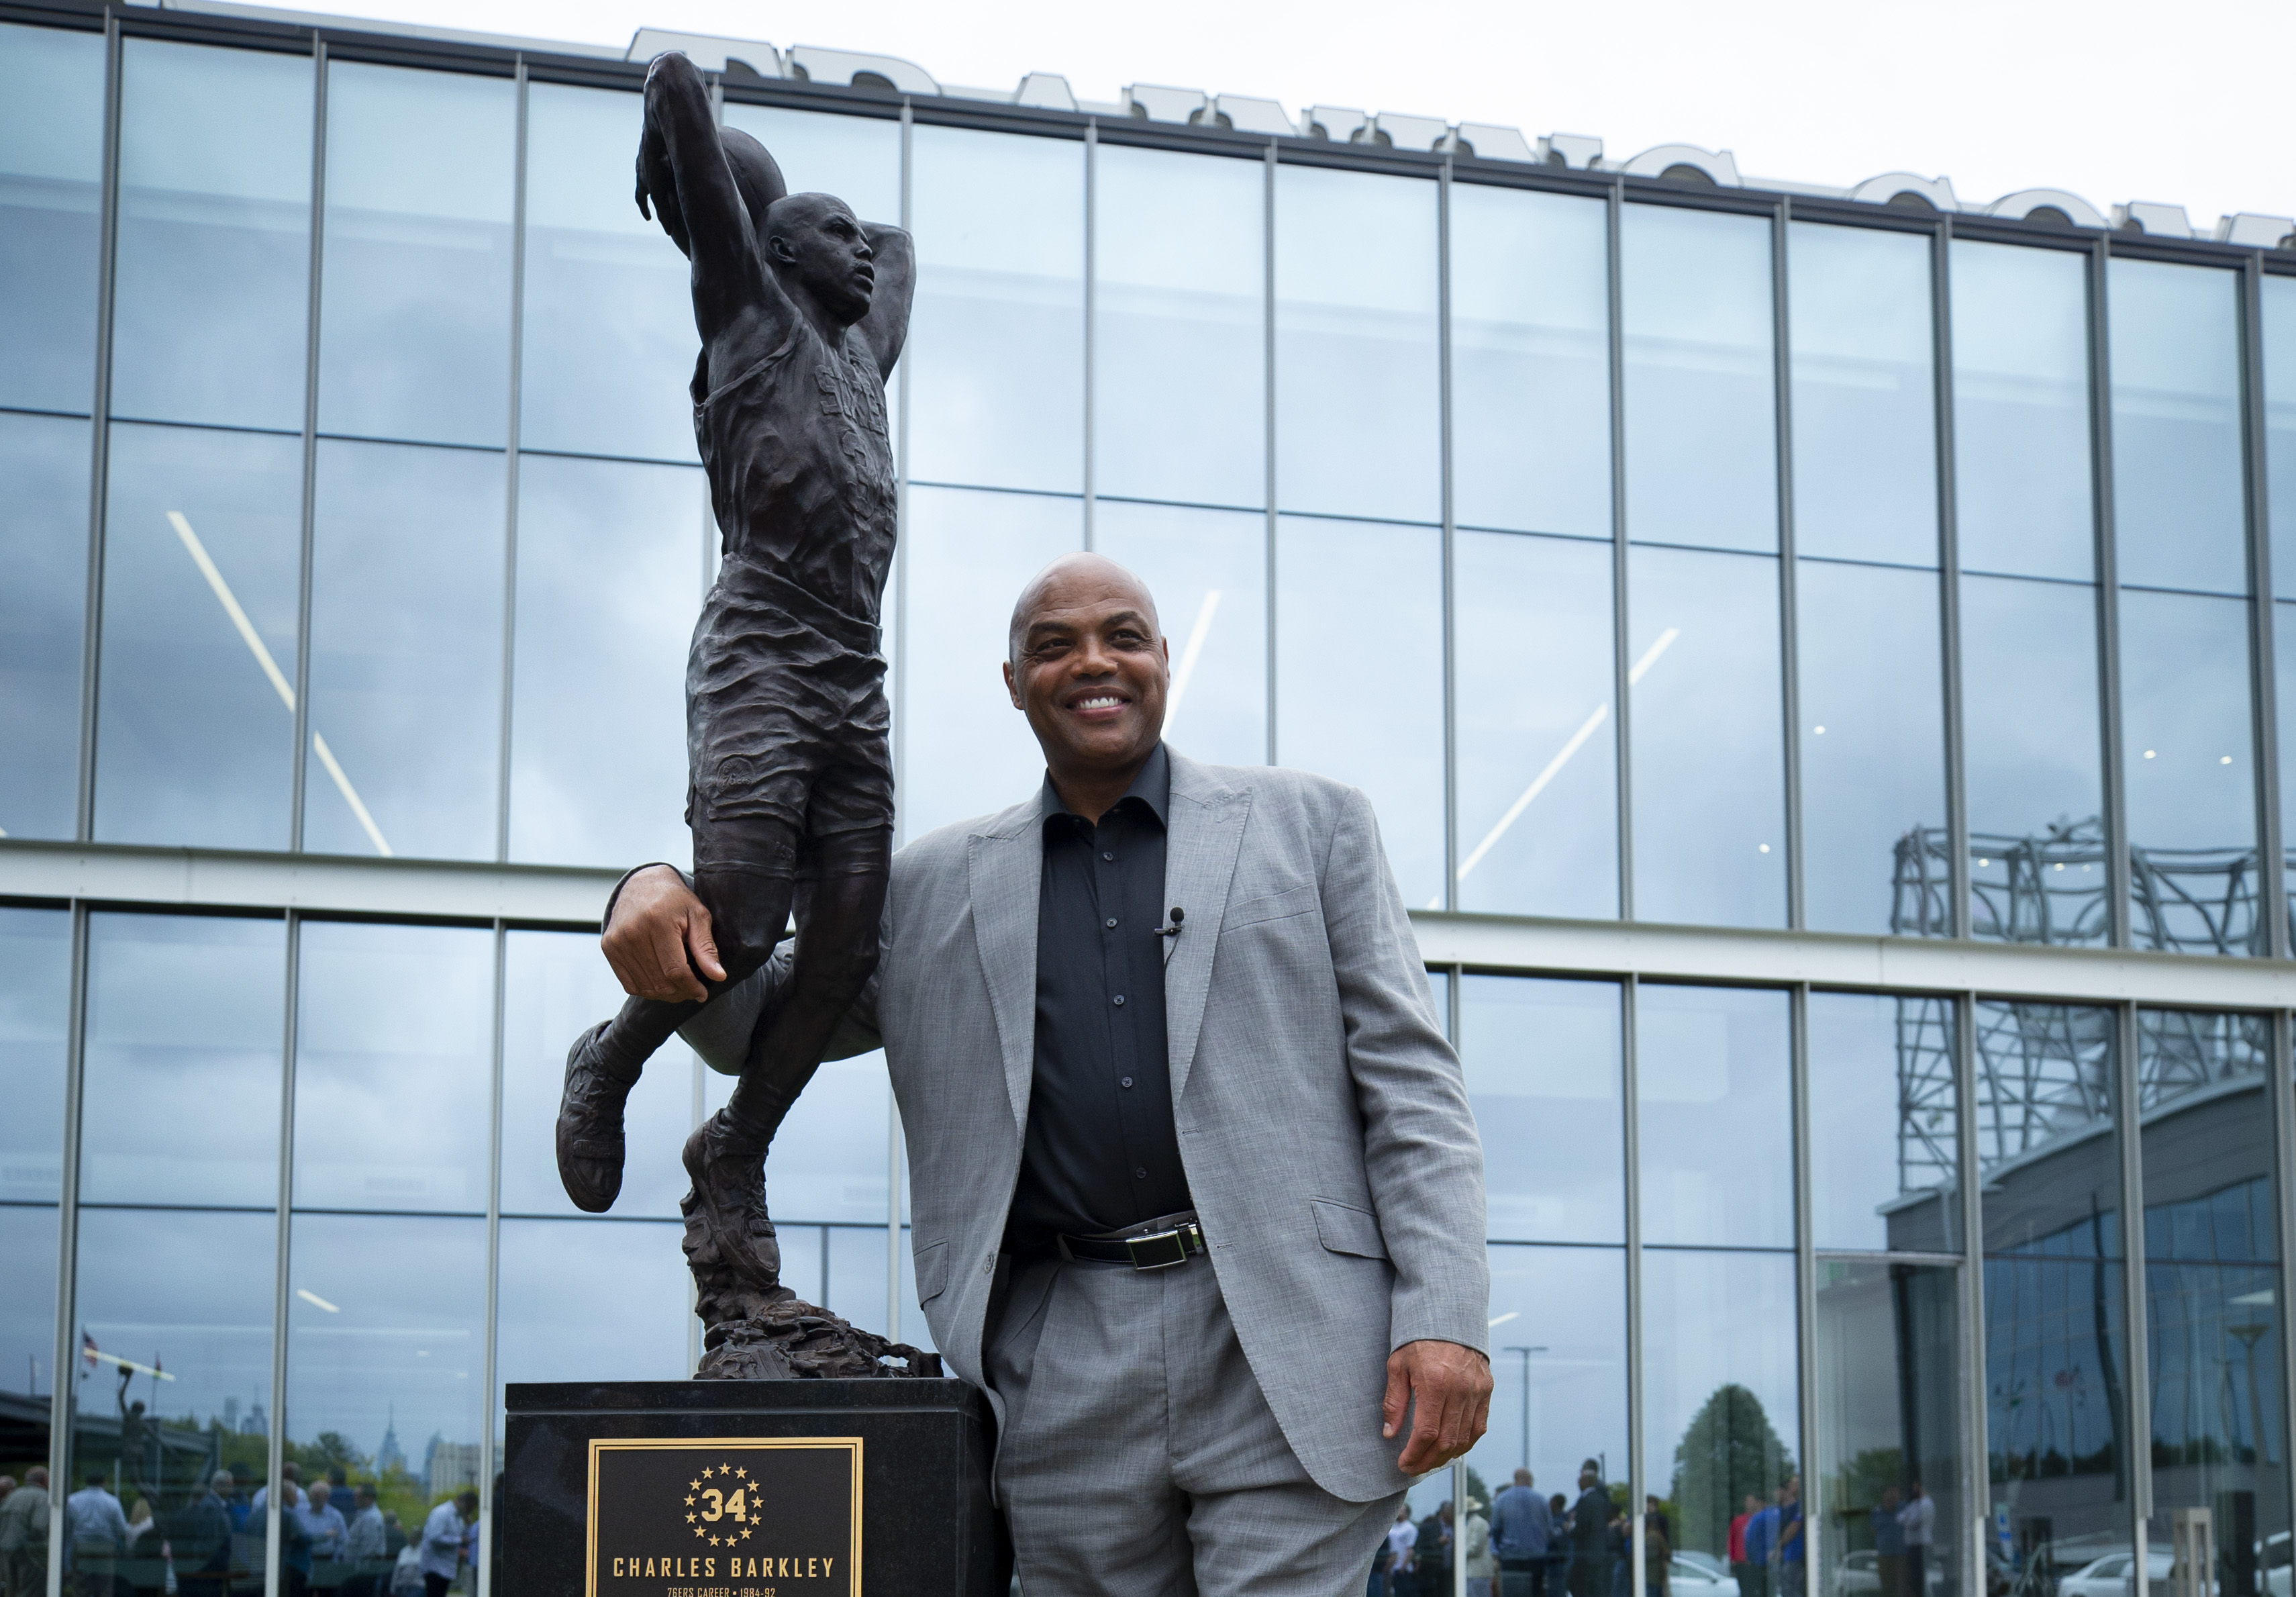 Charles Barkley poses for a picture with his sculpture at the Philadelphia 76ers training facility